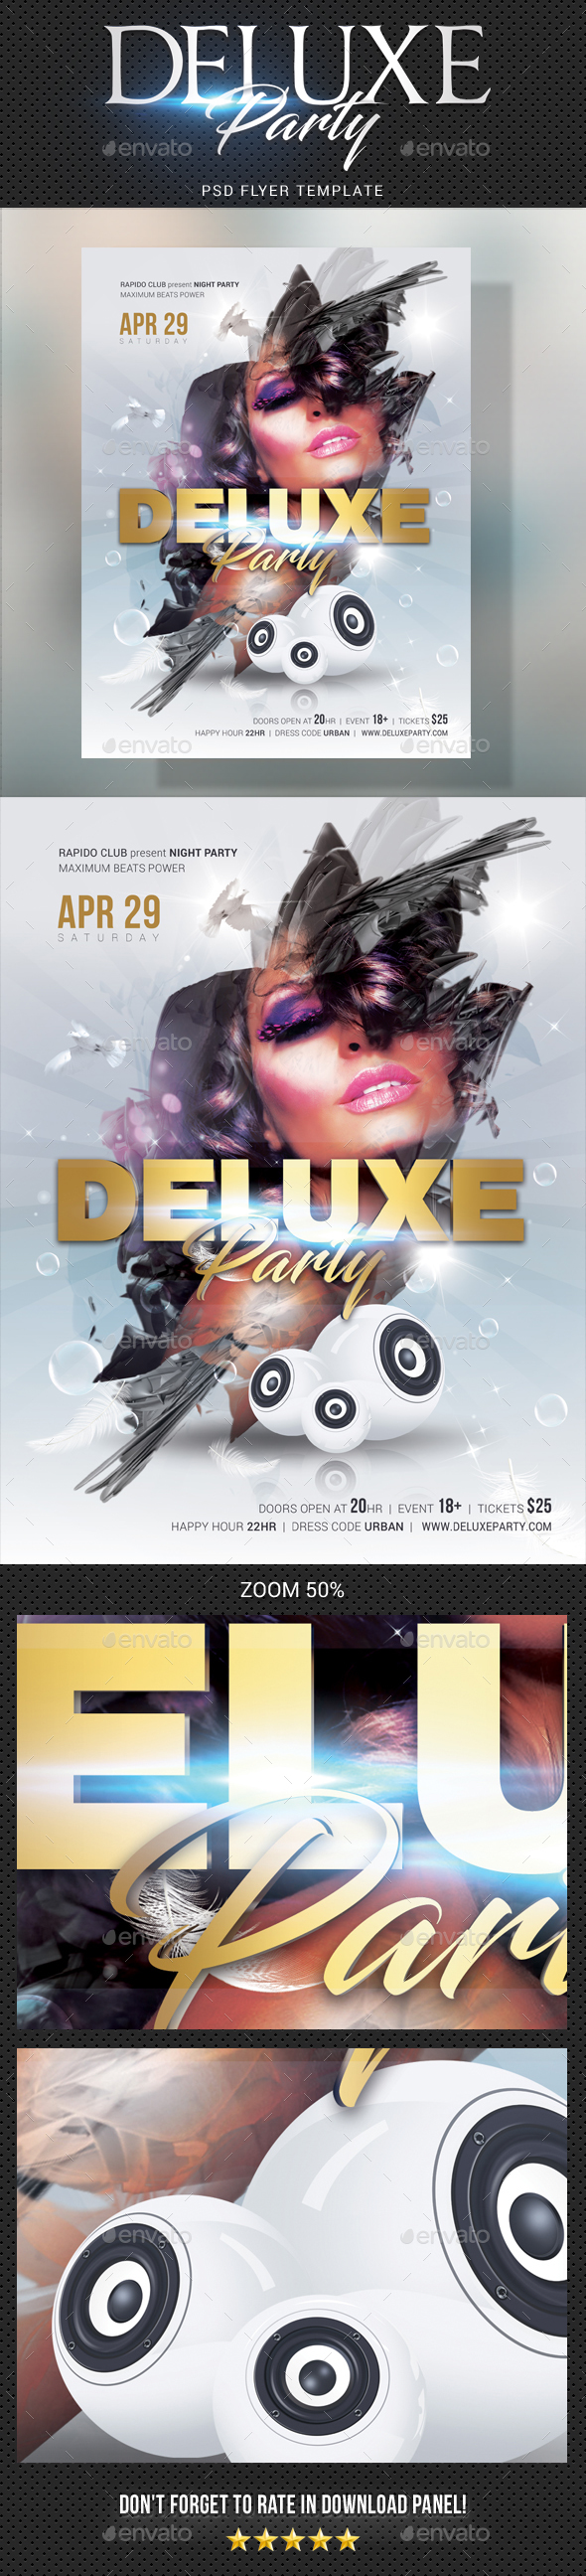 Deluxe Dj Party Flyer 03 - Clubs & Parties Events